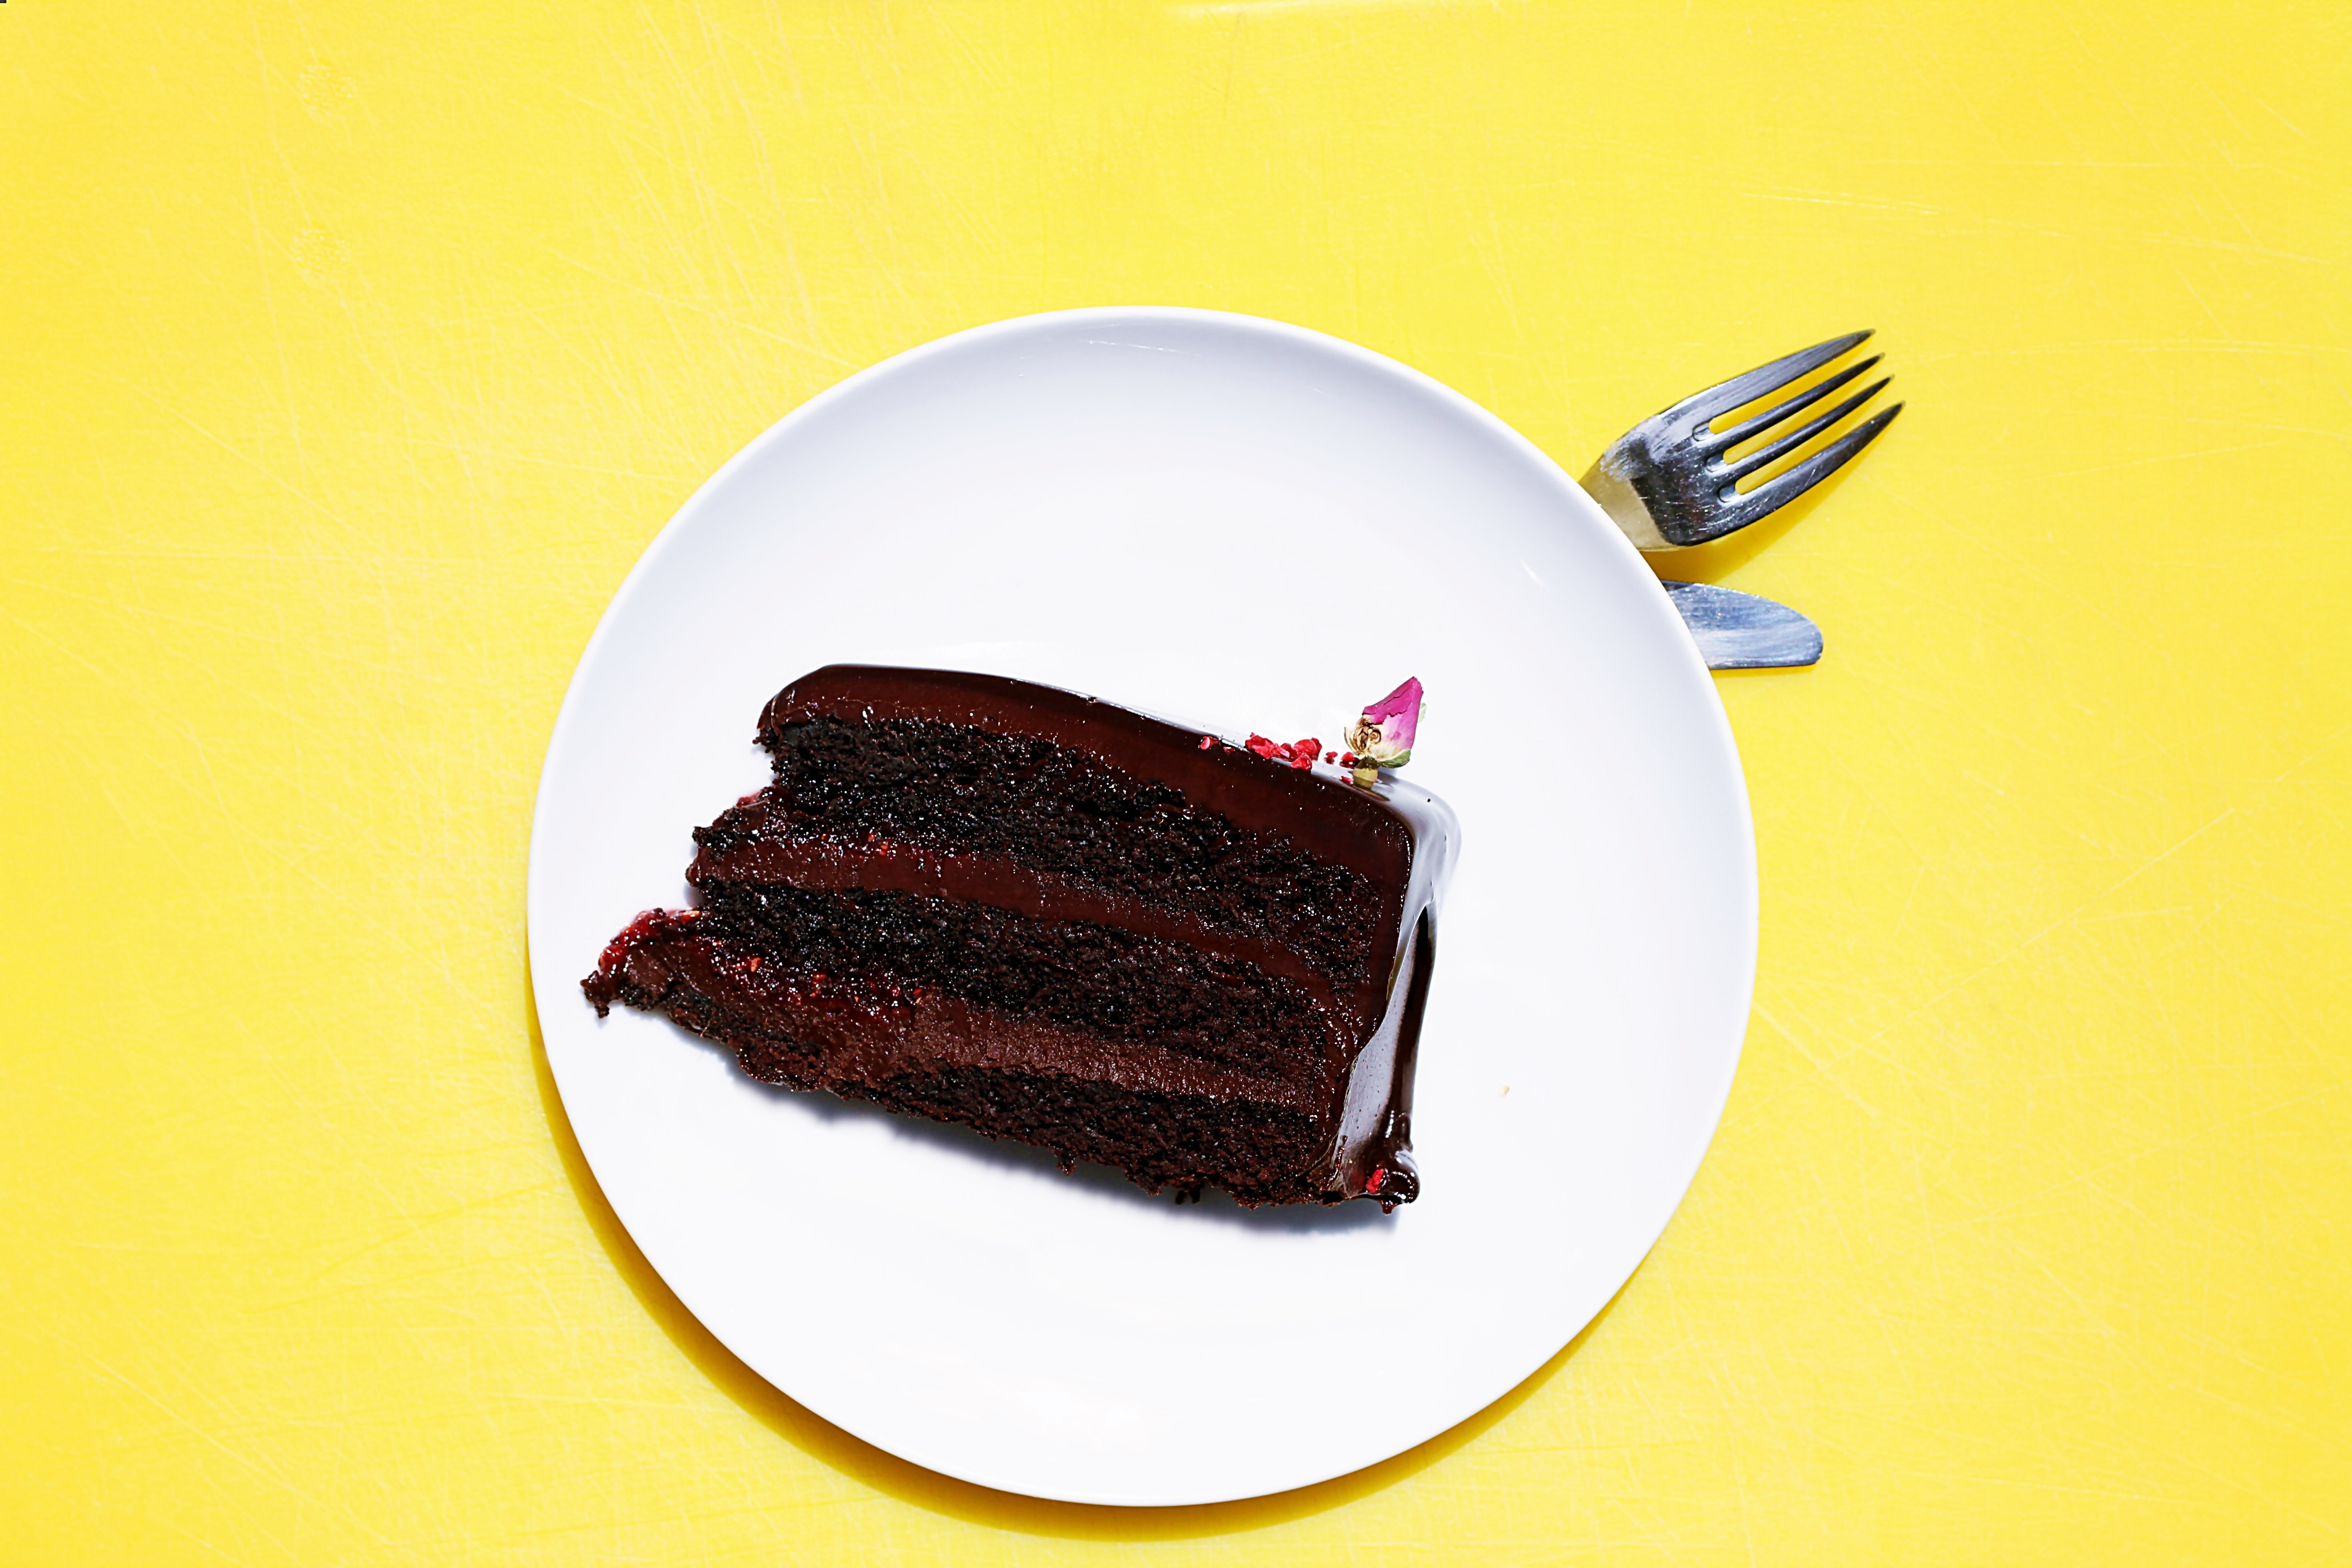 slice of chocolate cake on a white plate on a yellow surface